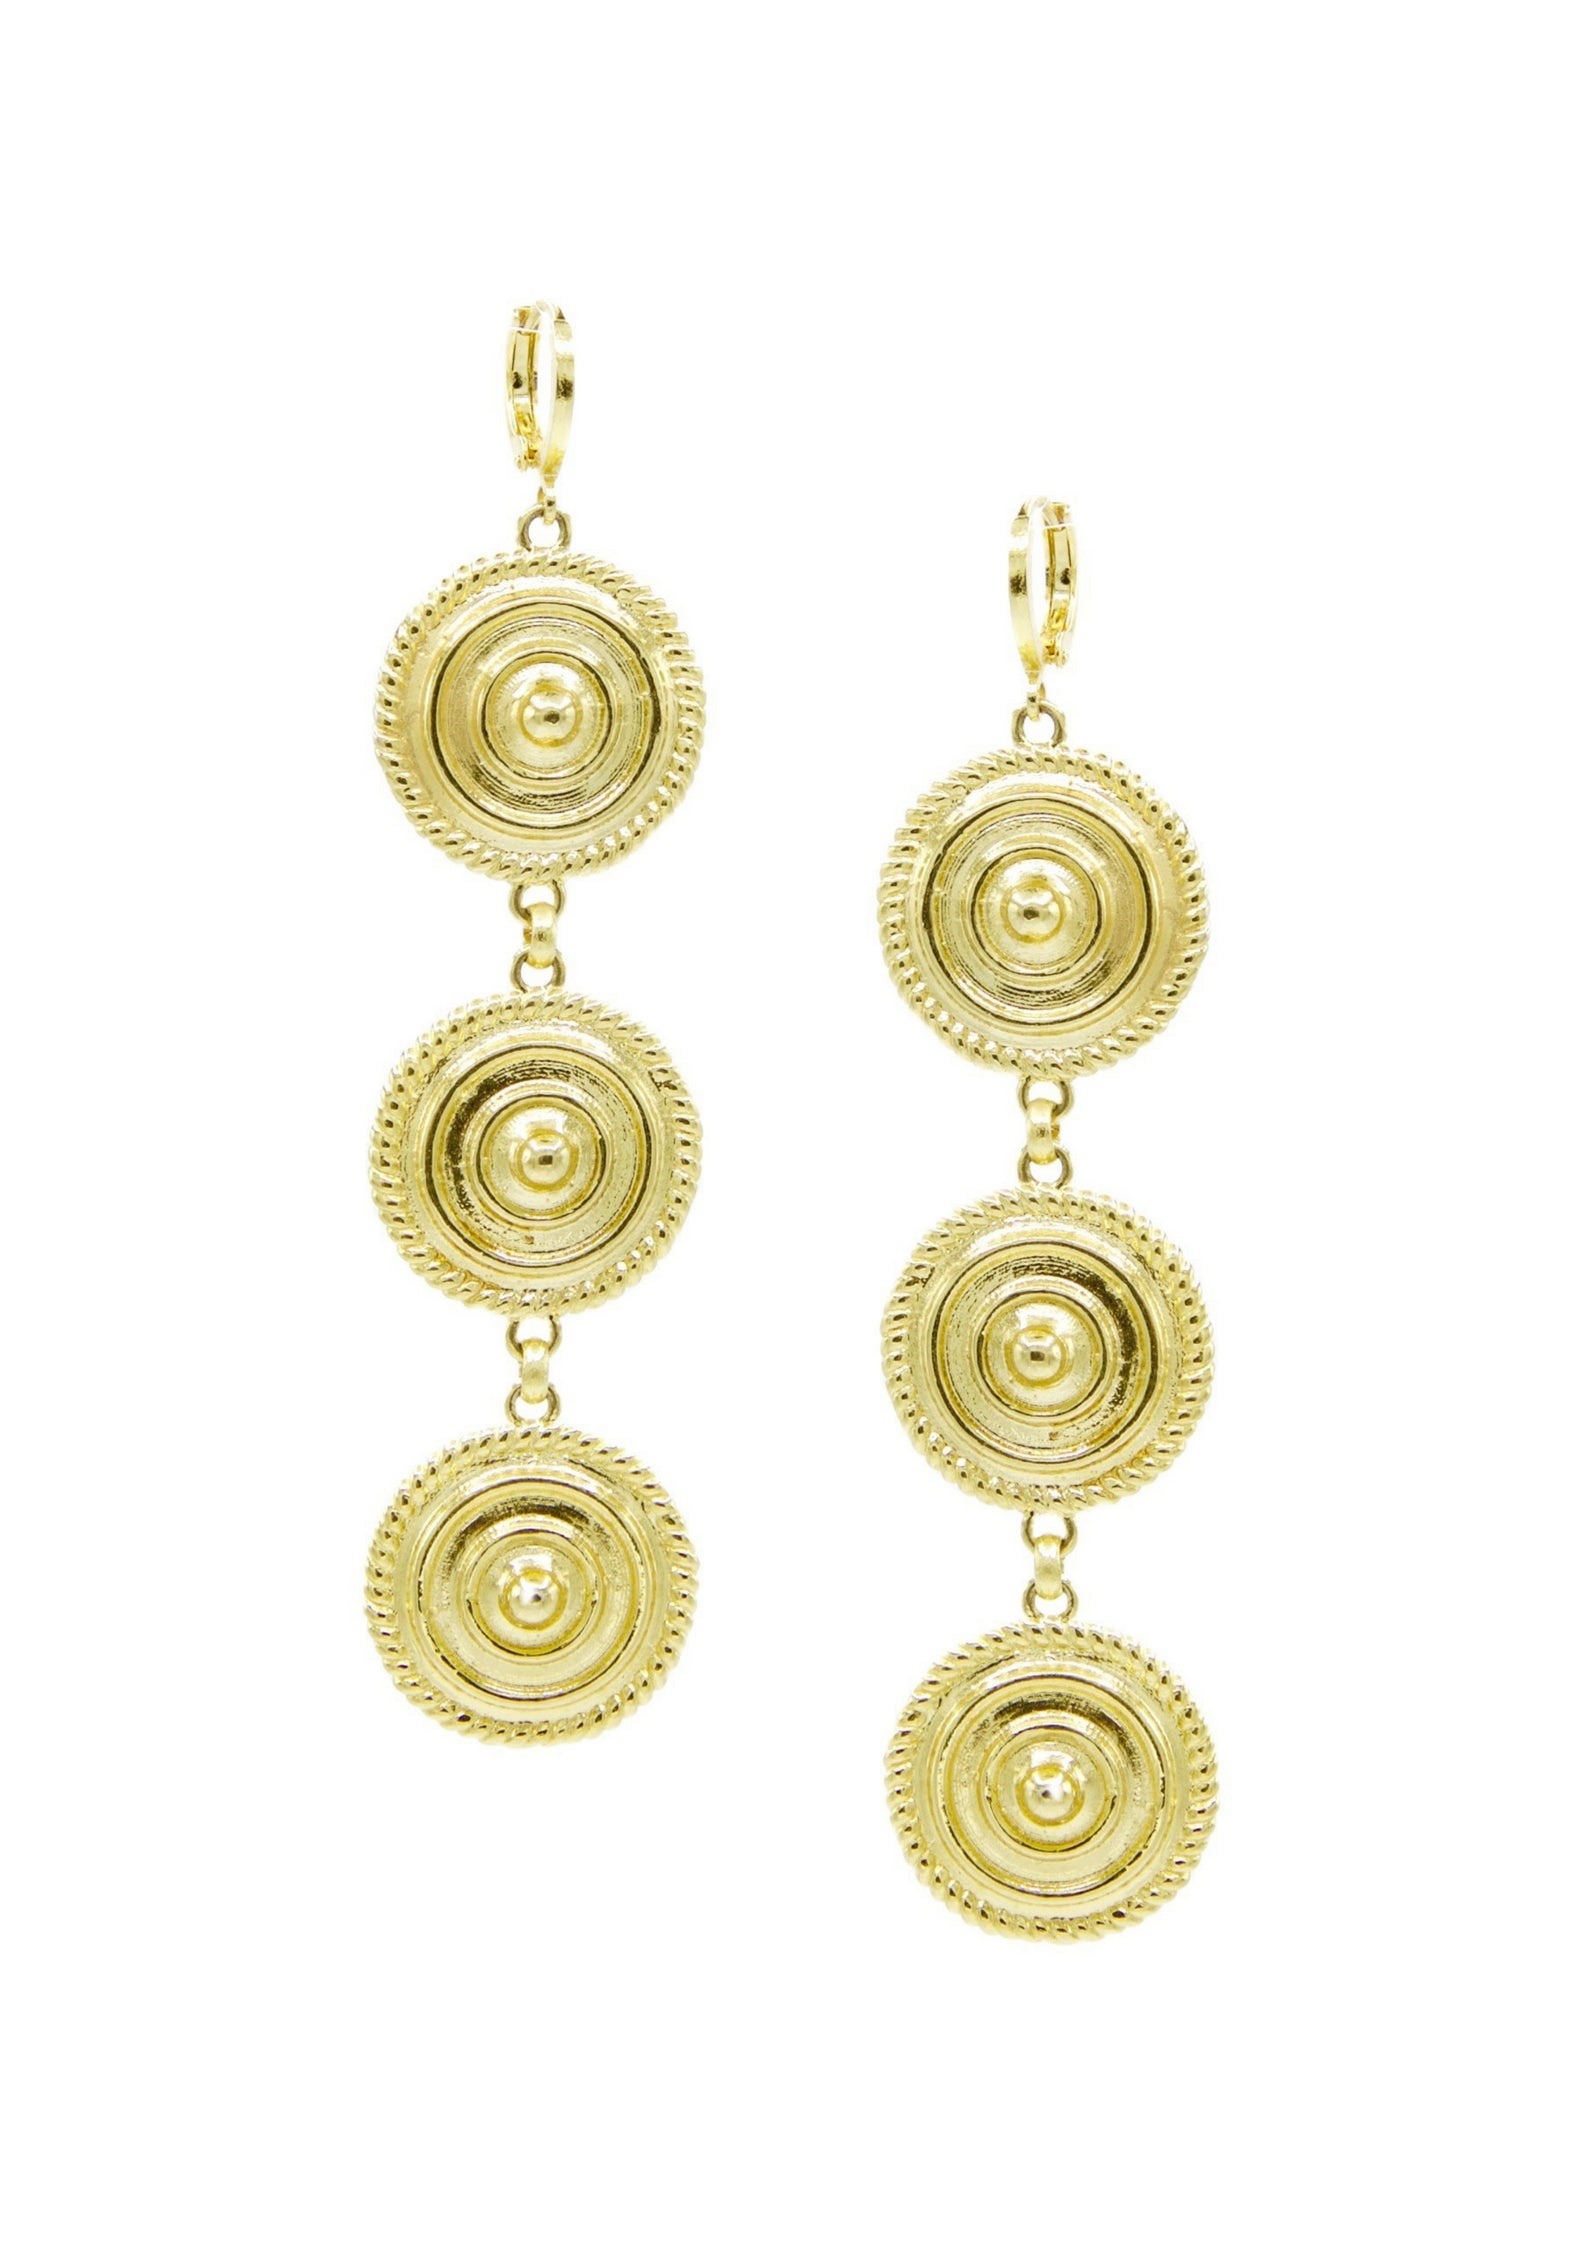 Minerva Gold Leverback Earrings-Earrings-Jared Jamin Online-JARED JAMIN